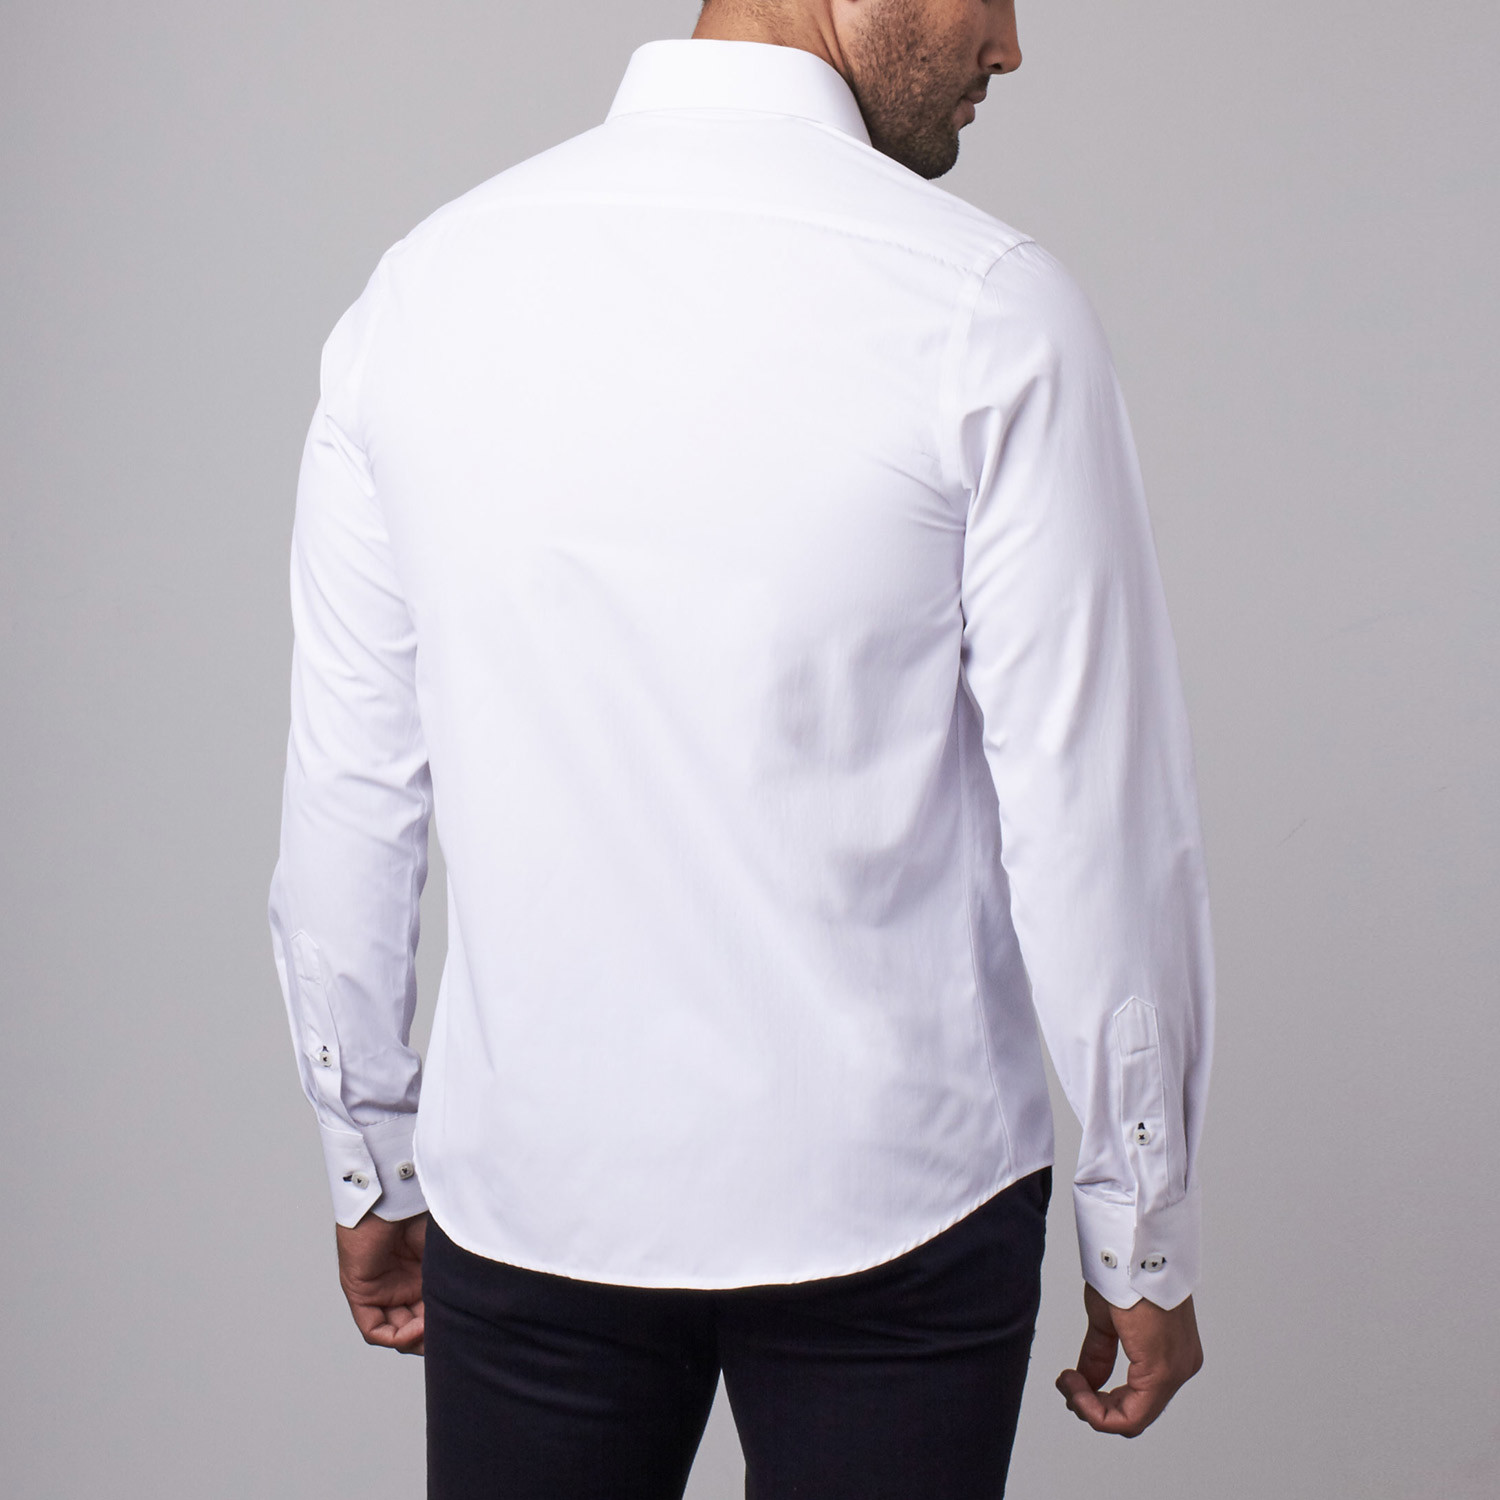 Classic dress shirt white s rosso milano touch of for Classic white dress shirt